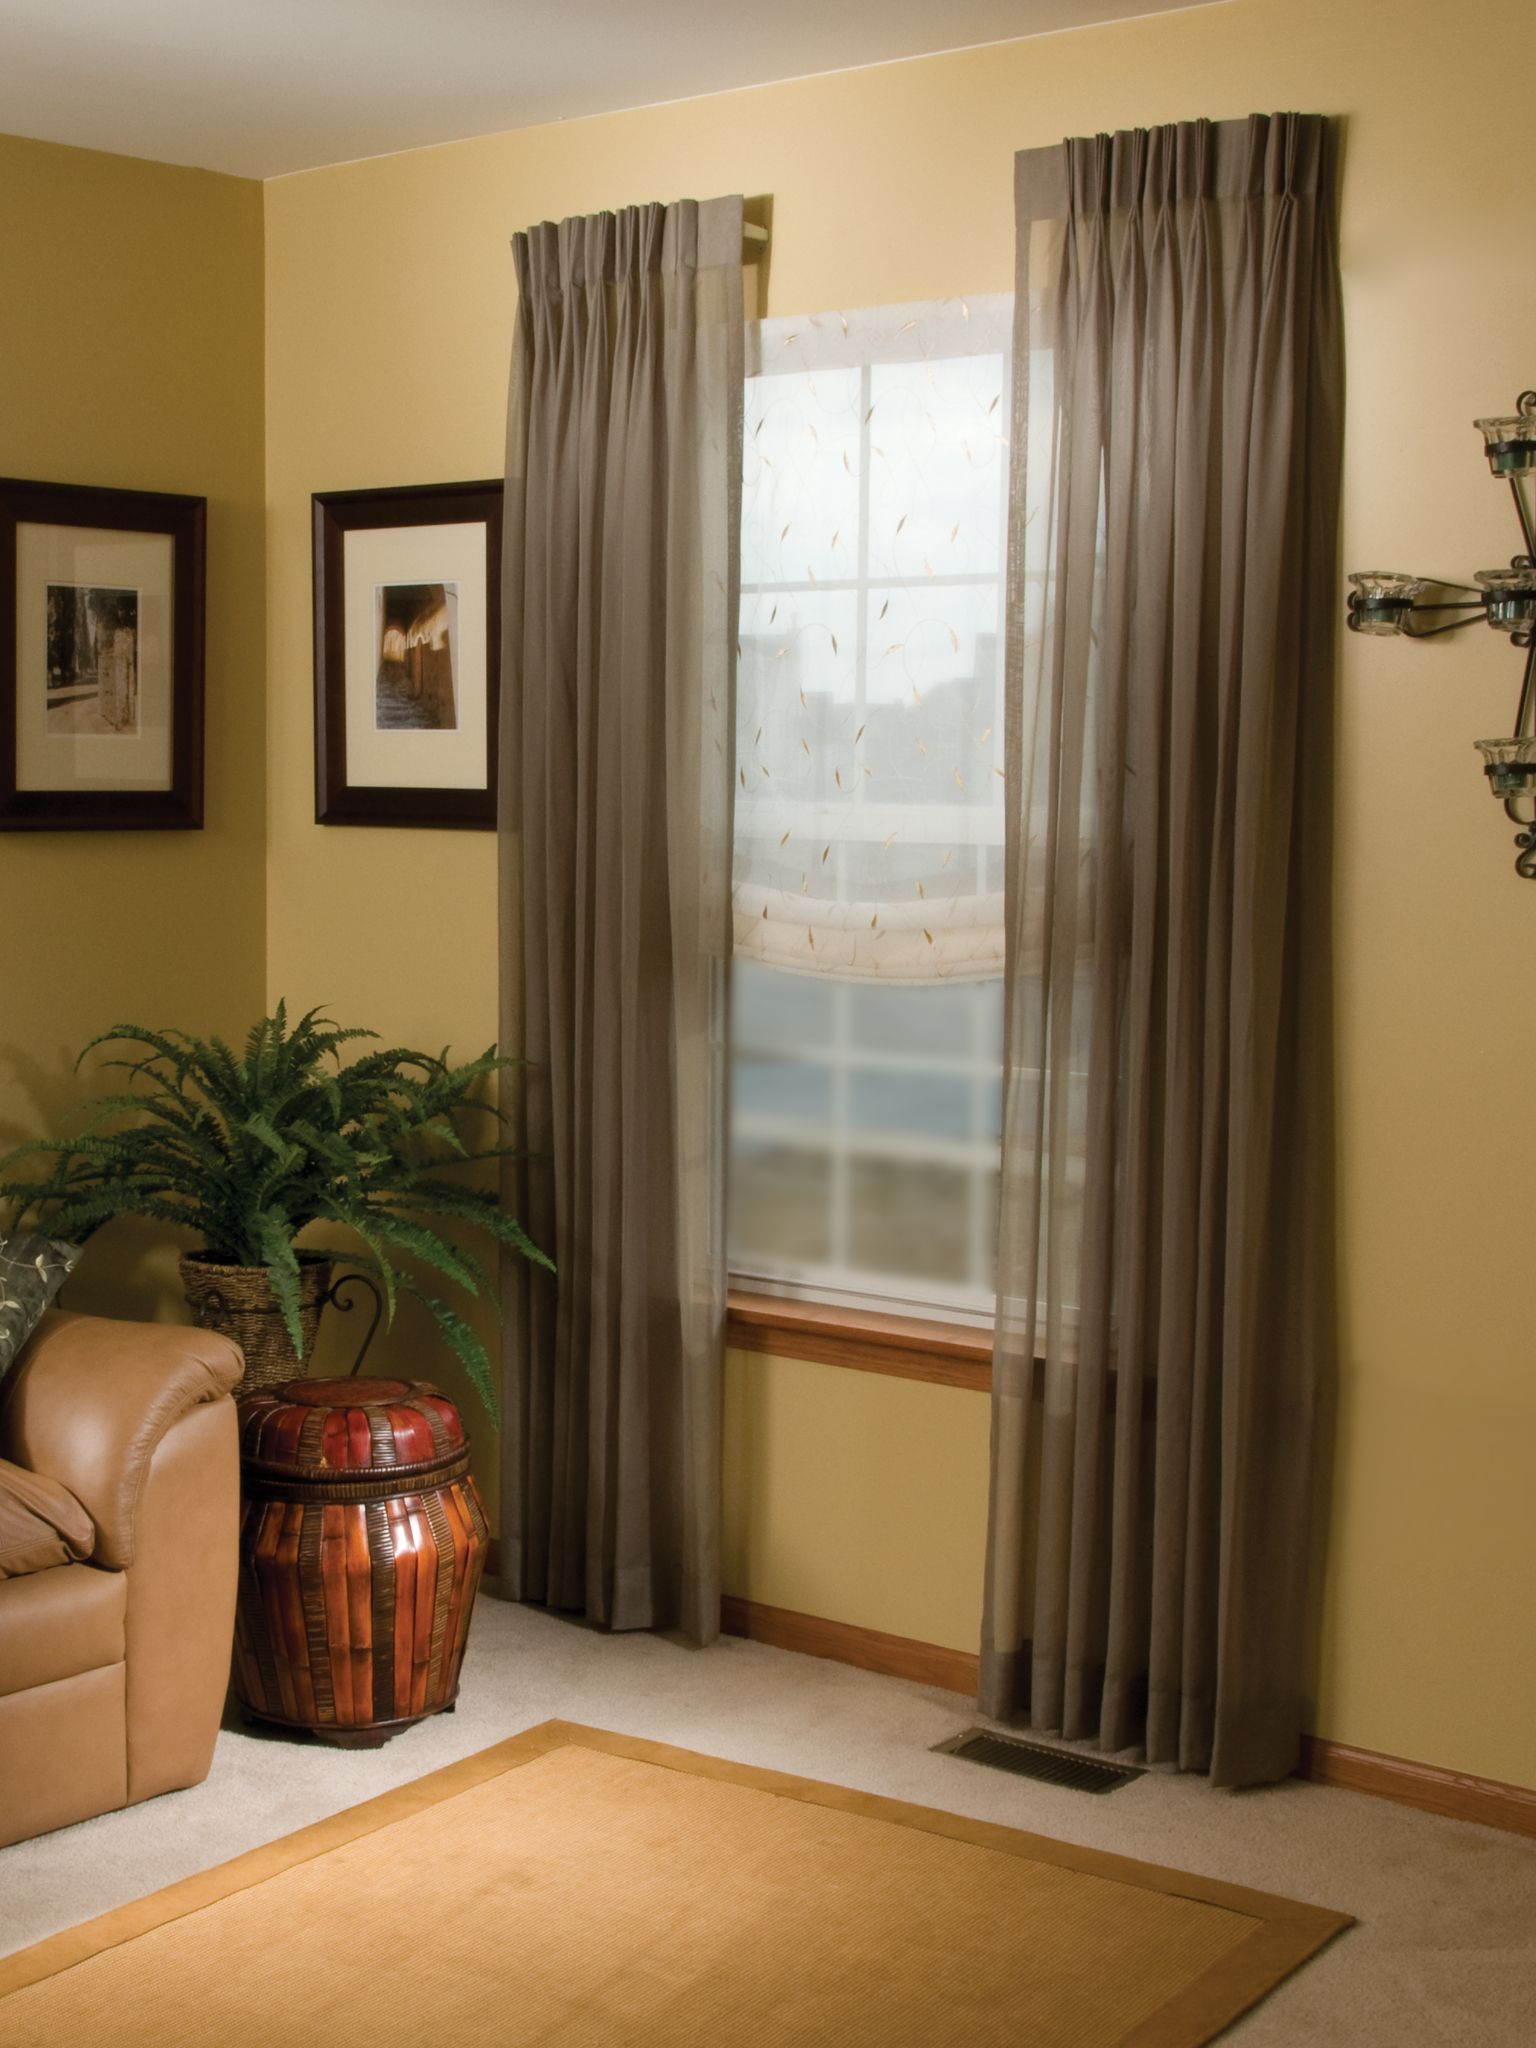 trendy sunshutcombi curtain and curtains panel drapes laserivorysidepanelcurtain side tag combinations blinds blind